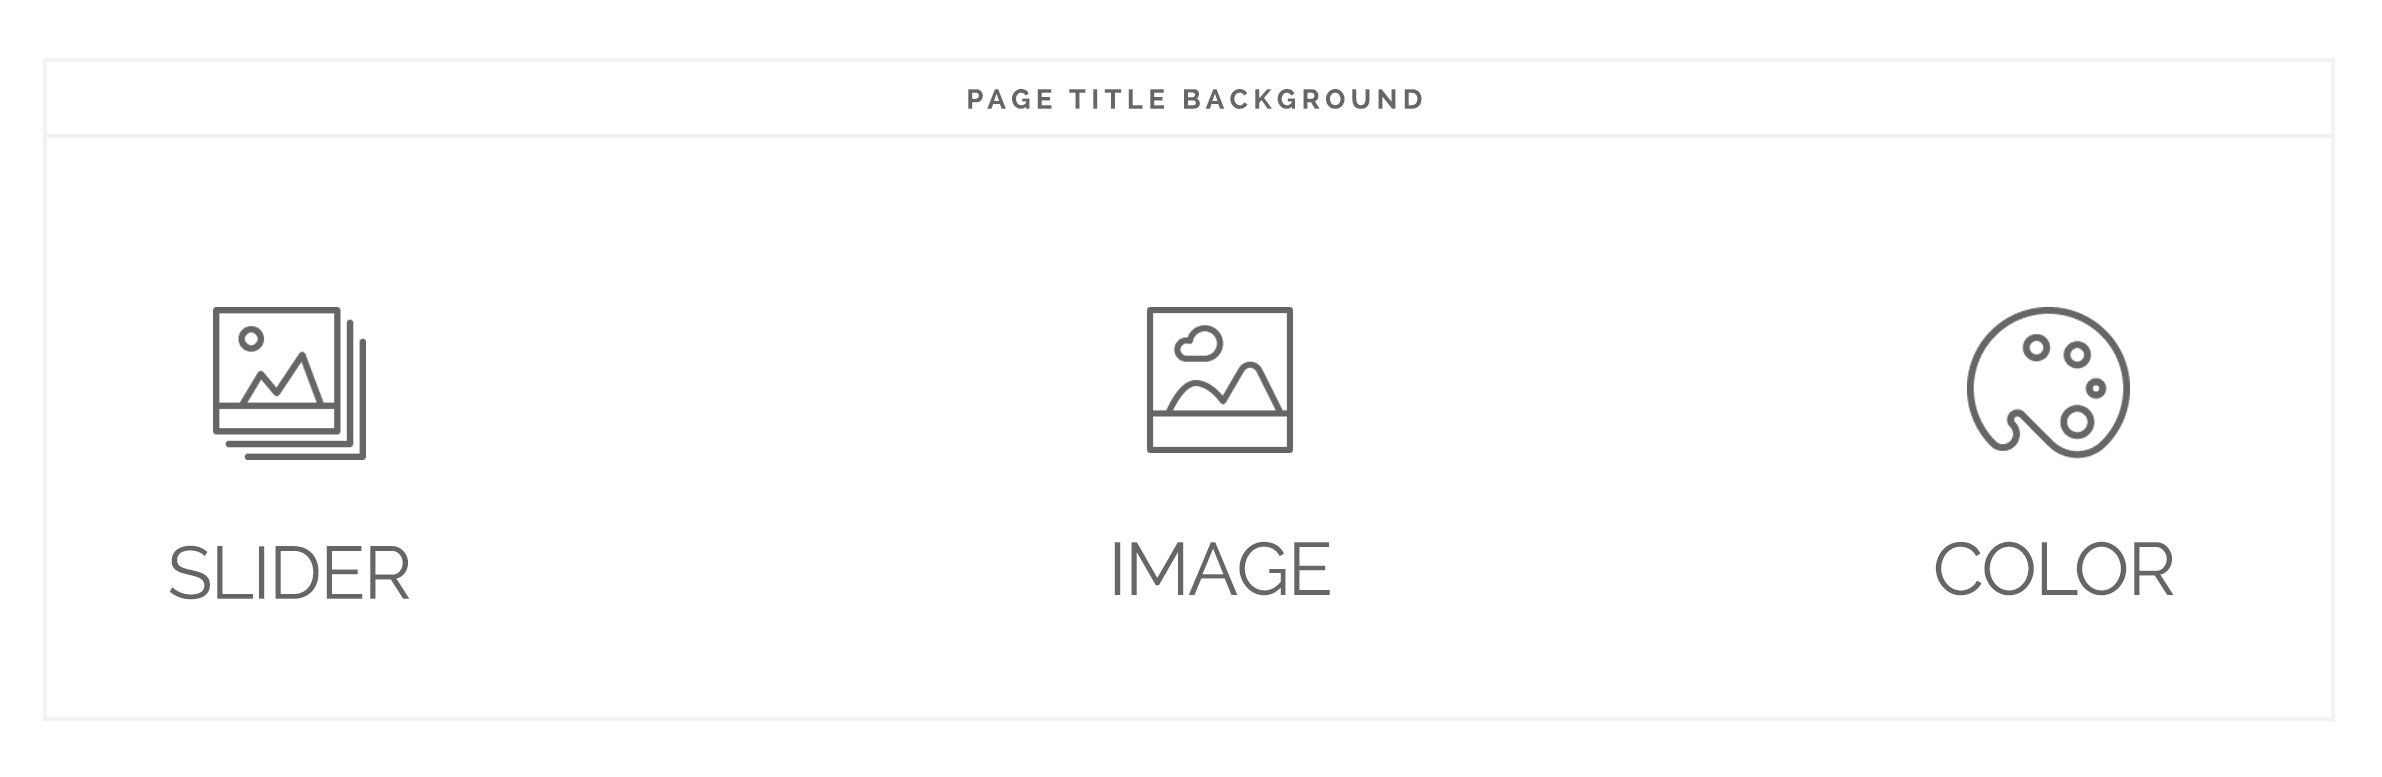 Page Title Background